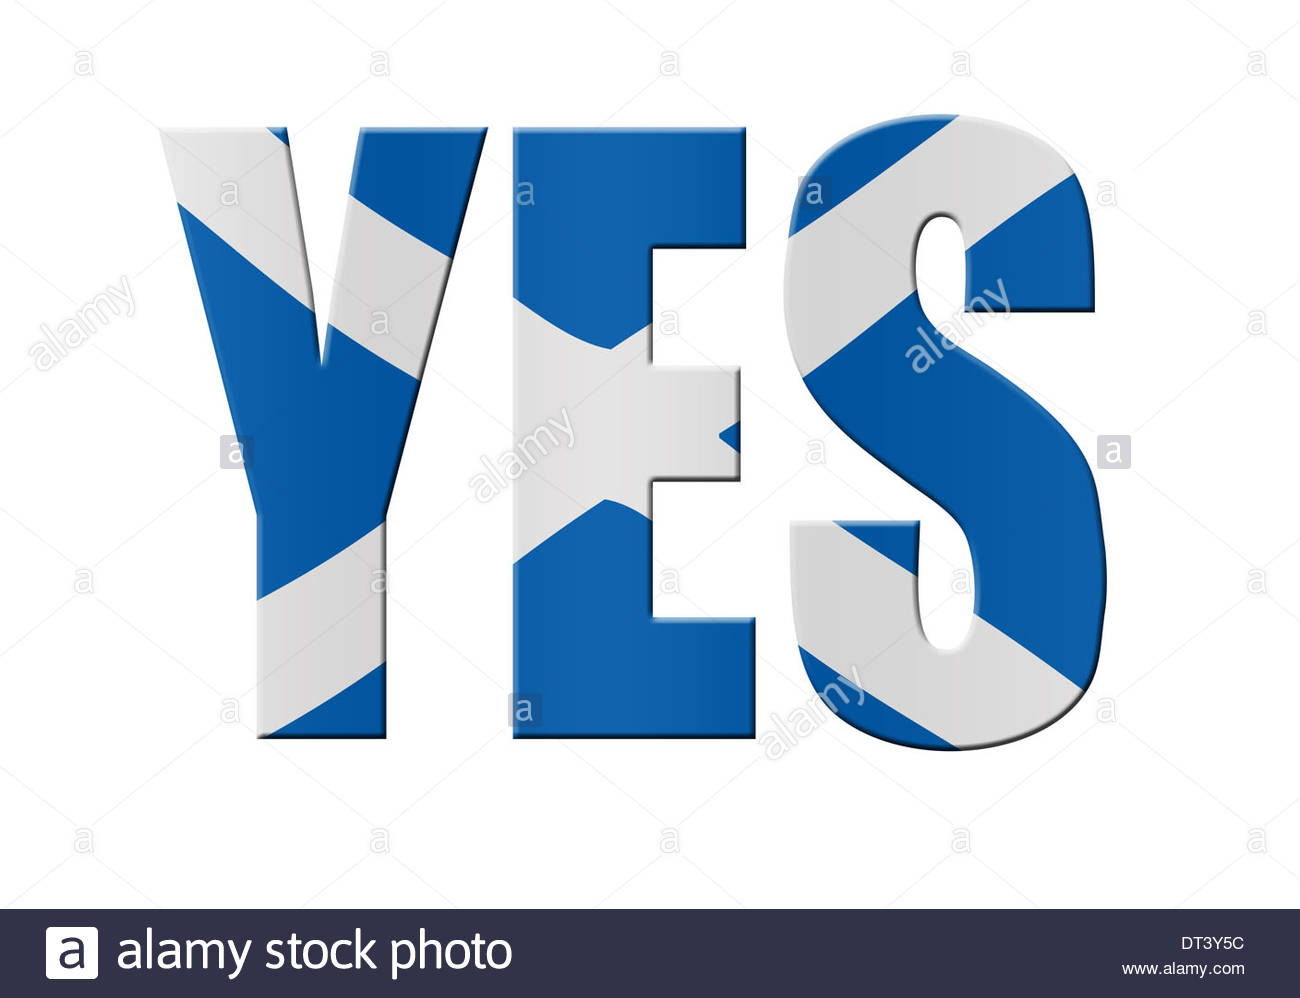 Digital Composition Concept - 18th September Scottish independence referendum. Scottish yes. - Stock Image